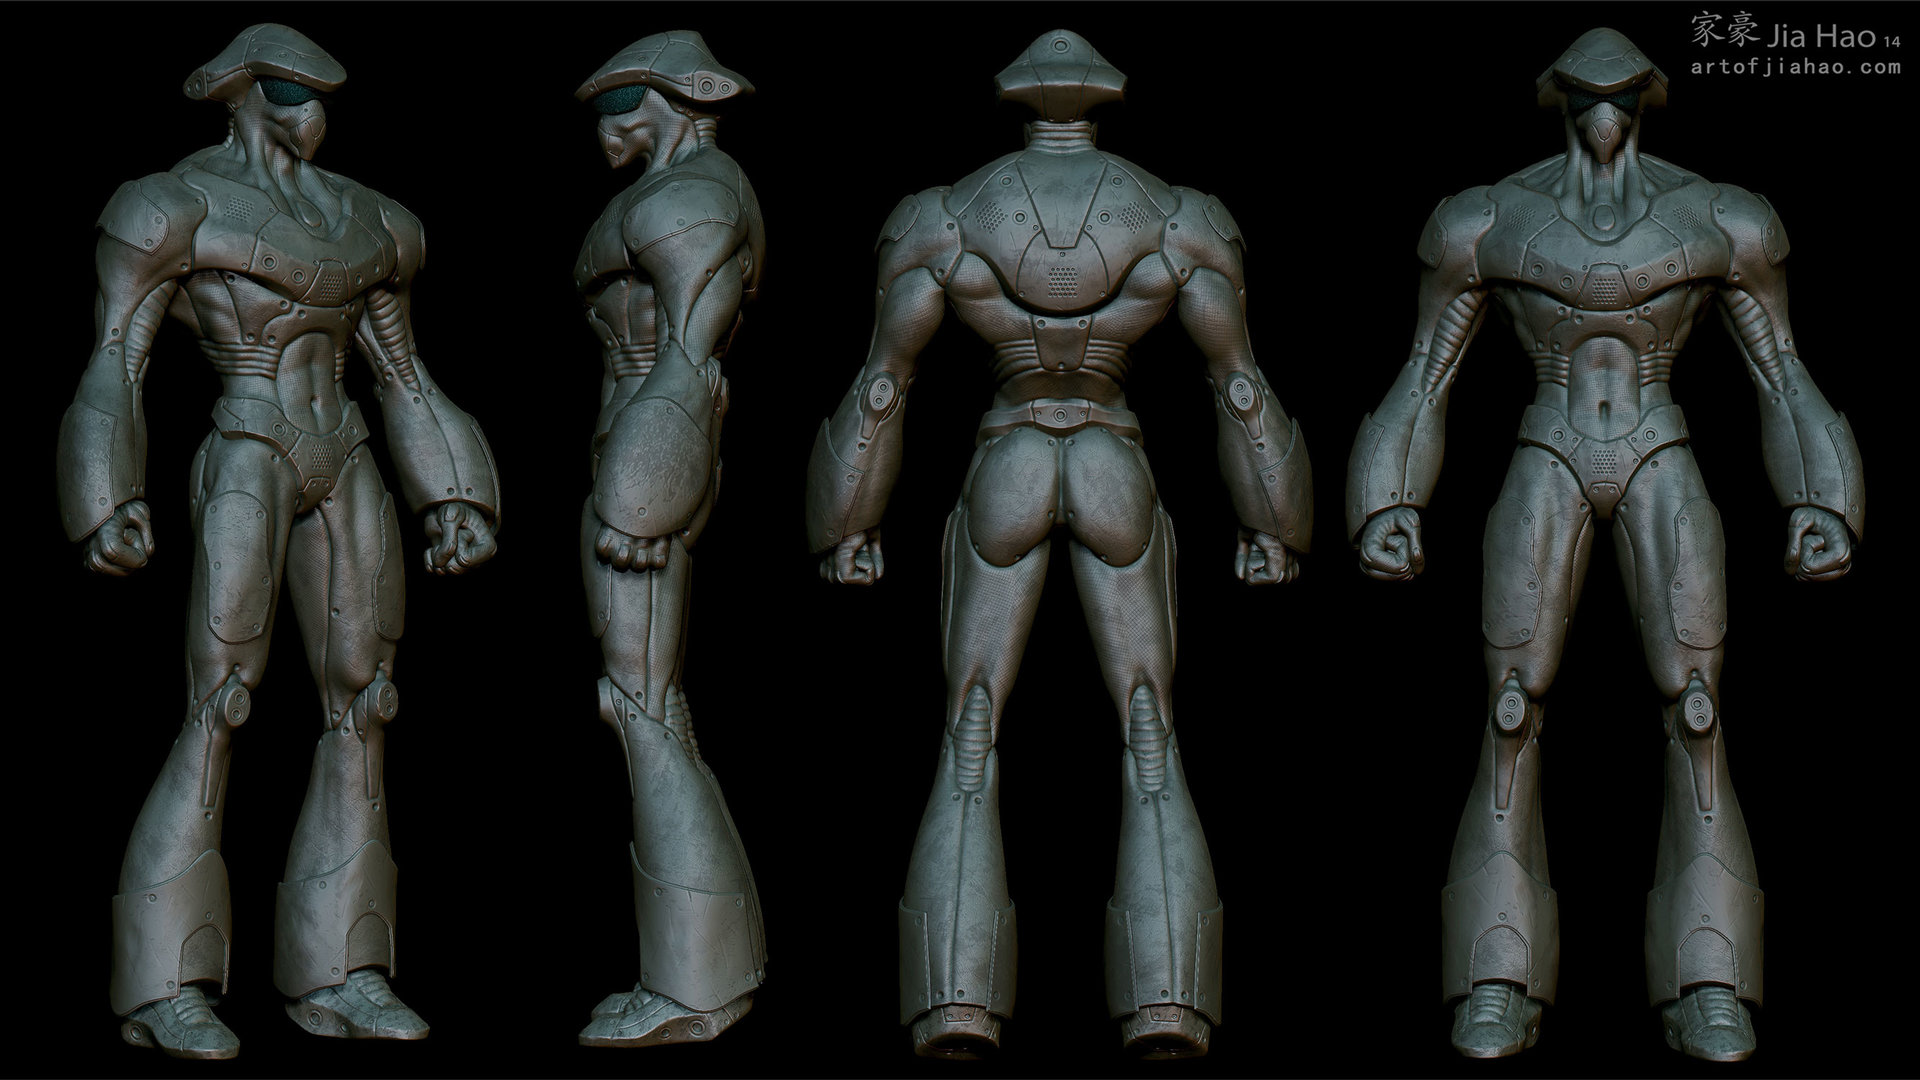 Jia hao 2014 02 cyberboxer views sculpt2